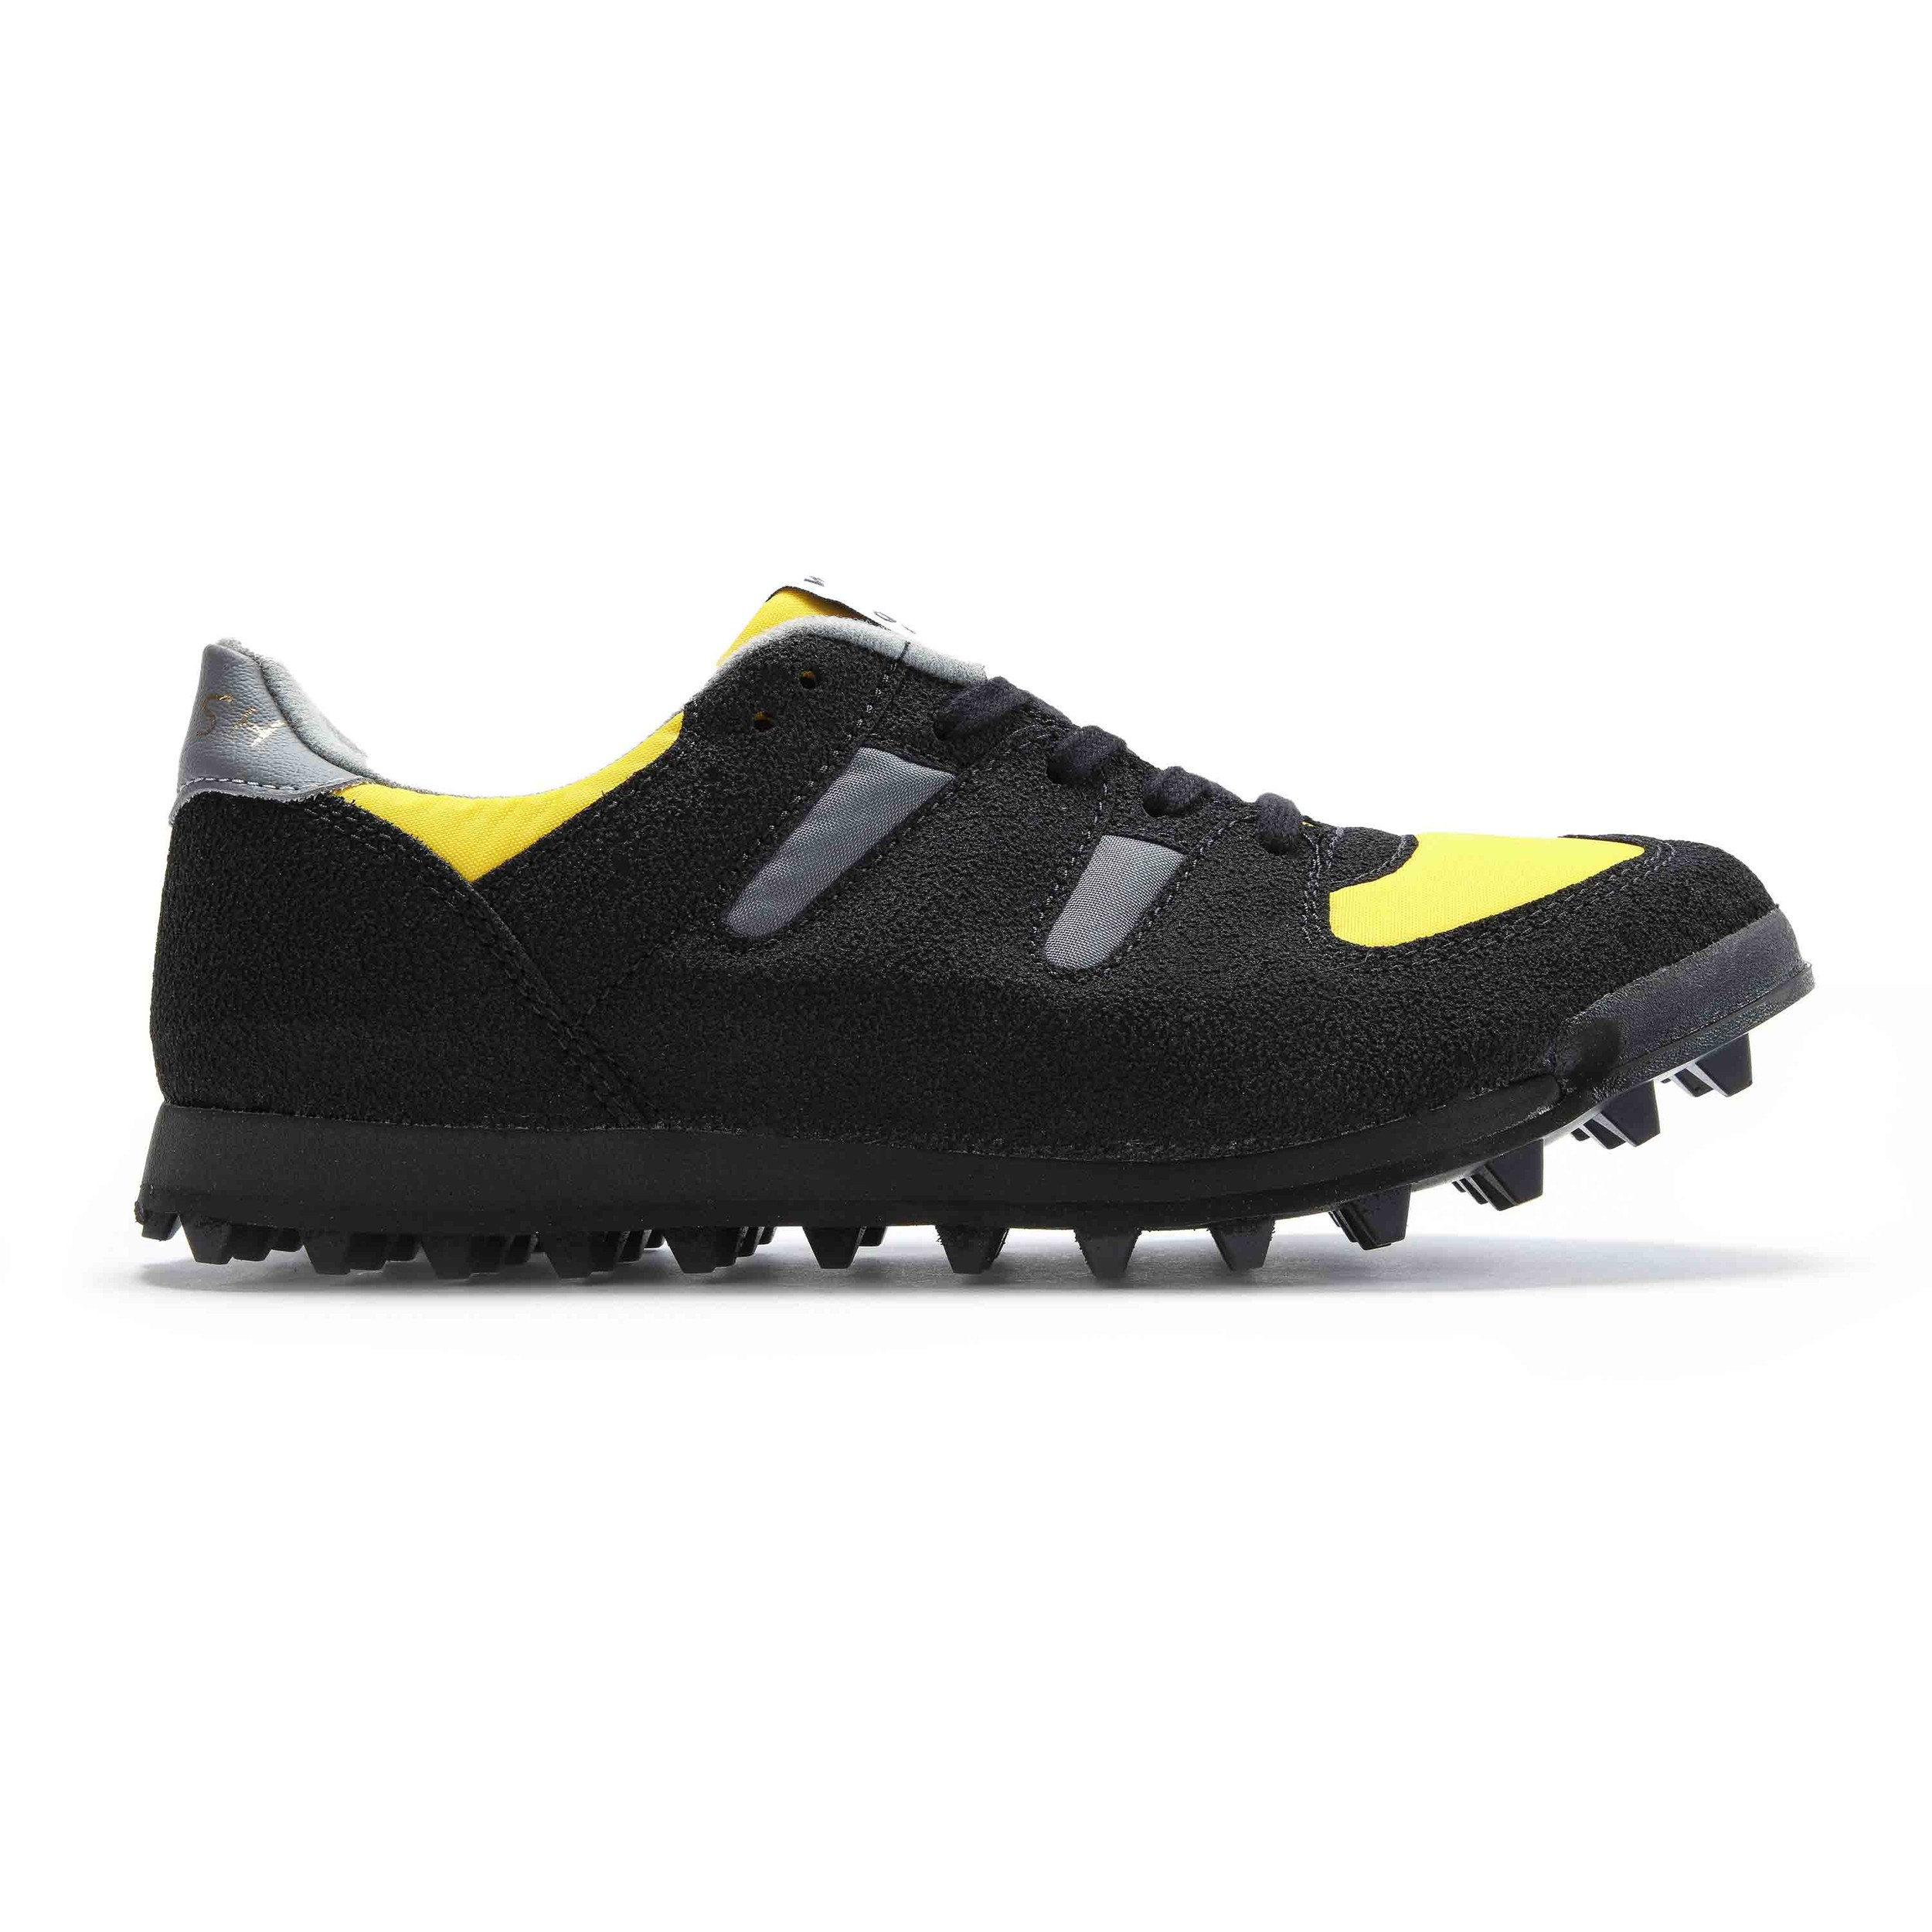 Scarpe Running Walsh Pb Elite Extreme Fell Uomo Donna Corsa Trail Nero Nuove